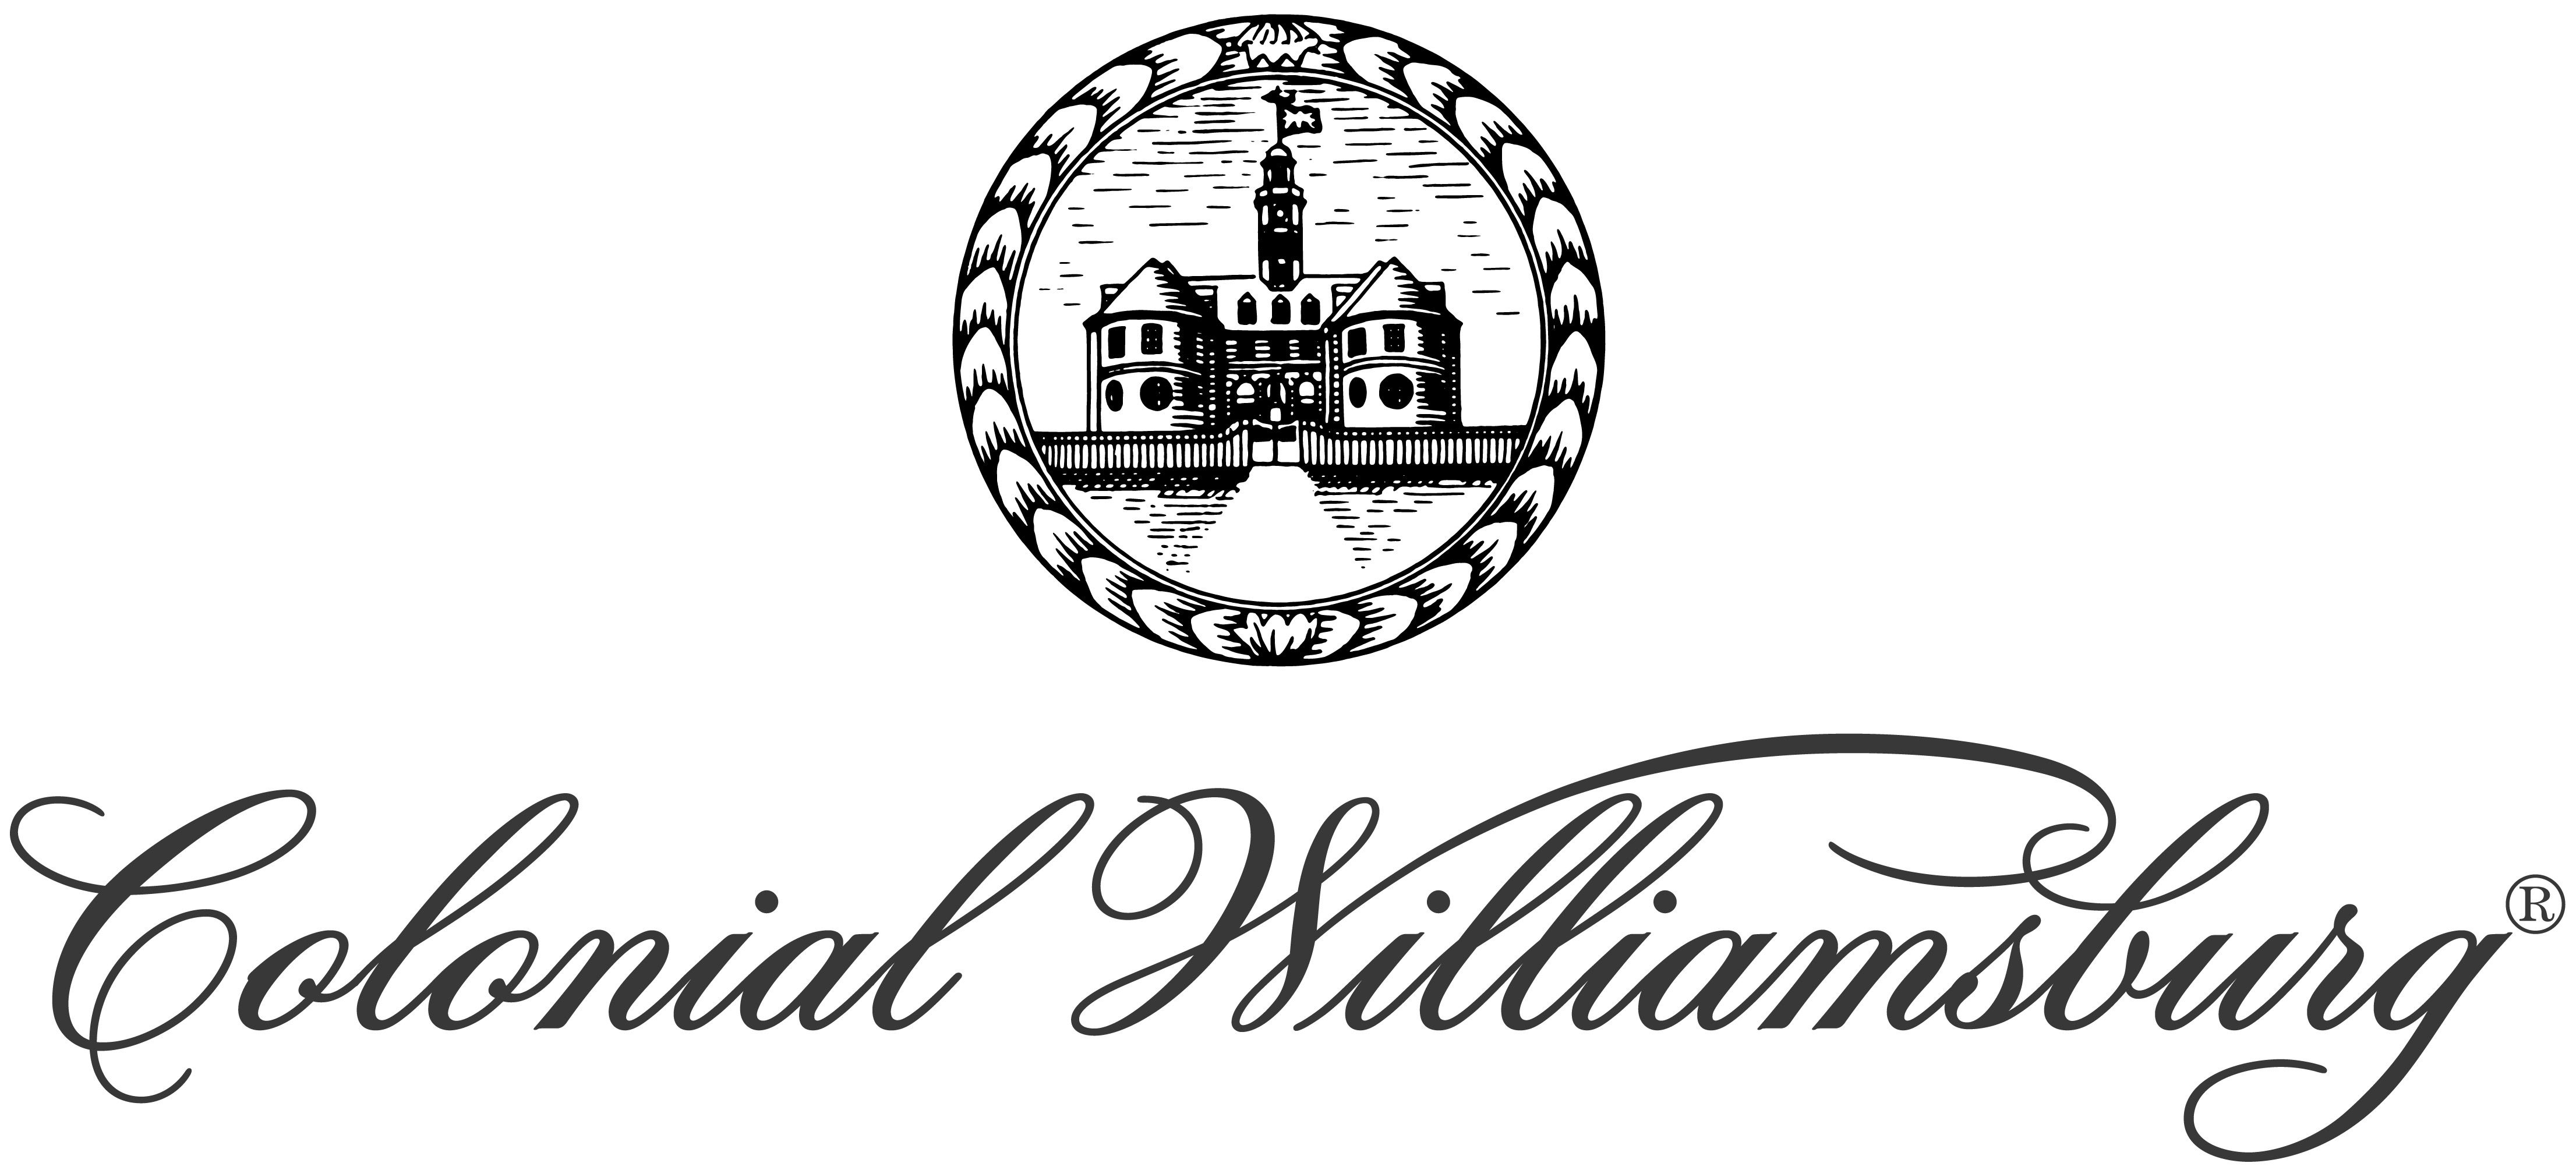 Colonial williamsburg clipart clipart black and white library Colonial Williamsburg   Graphic Design   Colonial williamsburg ... clipart black and white library